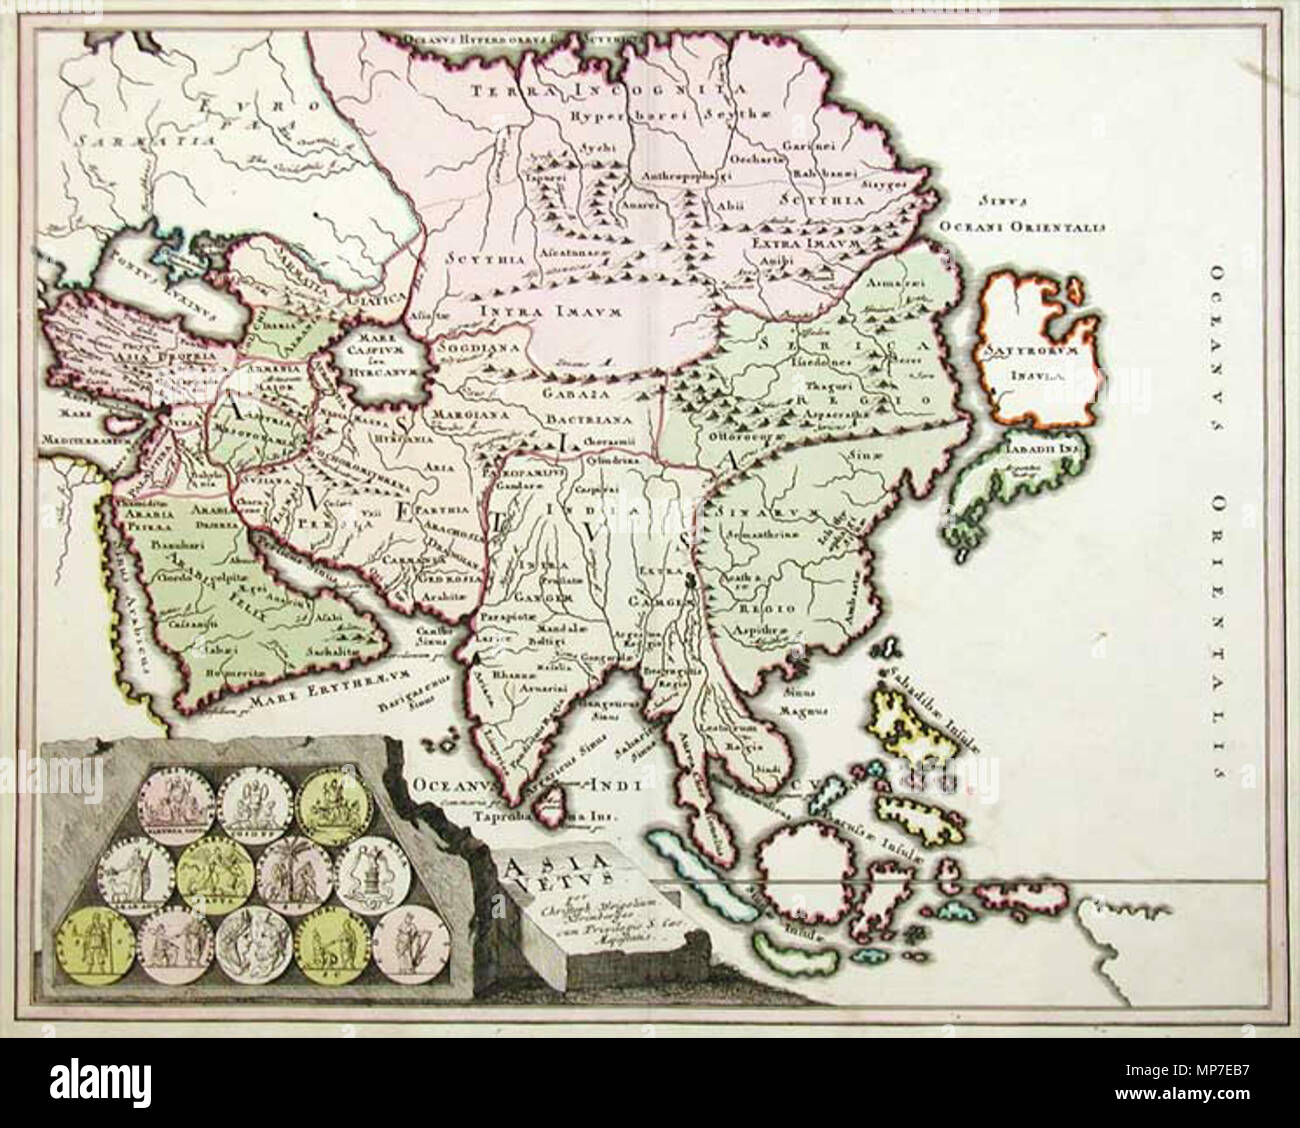 . English: 'Old Asia' (Asia Vetus) by Christoph Weigel, Nuremberg, 1719. 1719 map of Asia with Ptolemaic placenames. Copper engraving, with depictions of twelve antique coins in the bottom left corner. 1719.   Christoph Weigel the Elder (1654–1725)   Alternative names Christoph Weigel der Ältere  Description German engraver and publisher  Date of birth/death 9 November 1654 5 February 1725  Location of birth/death Marktredwitz Nuremberg  Work location Nuremberg  Authority control  : Q100116 VIAF:12366914 ISNI:0000 0001 0870 4350 ULAN:500043269 LCCN:n2008066461 NLA:36586258 WorldCat 673 - Stock Image